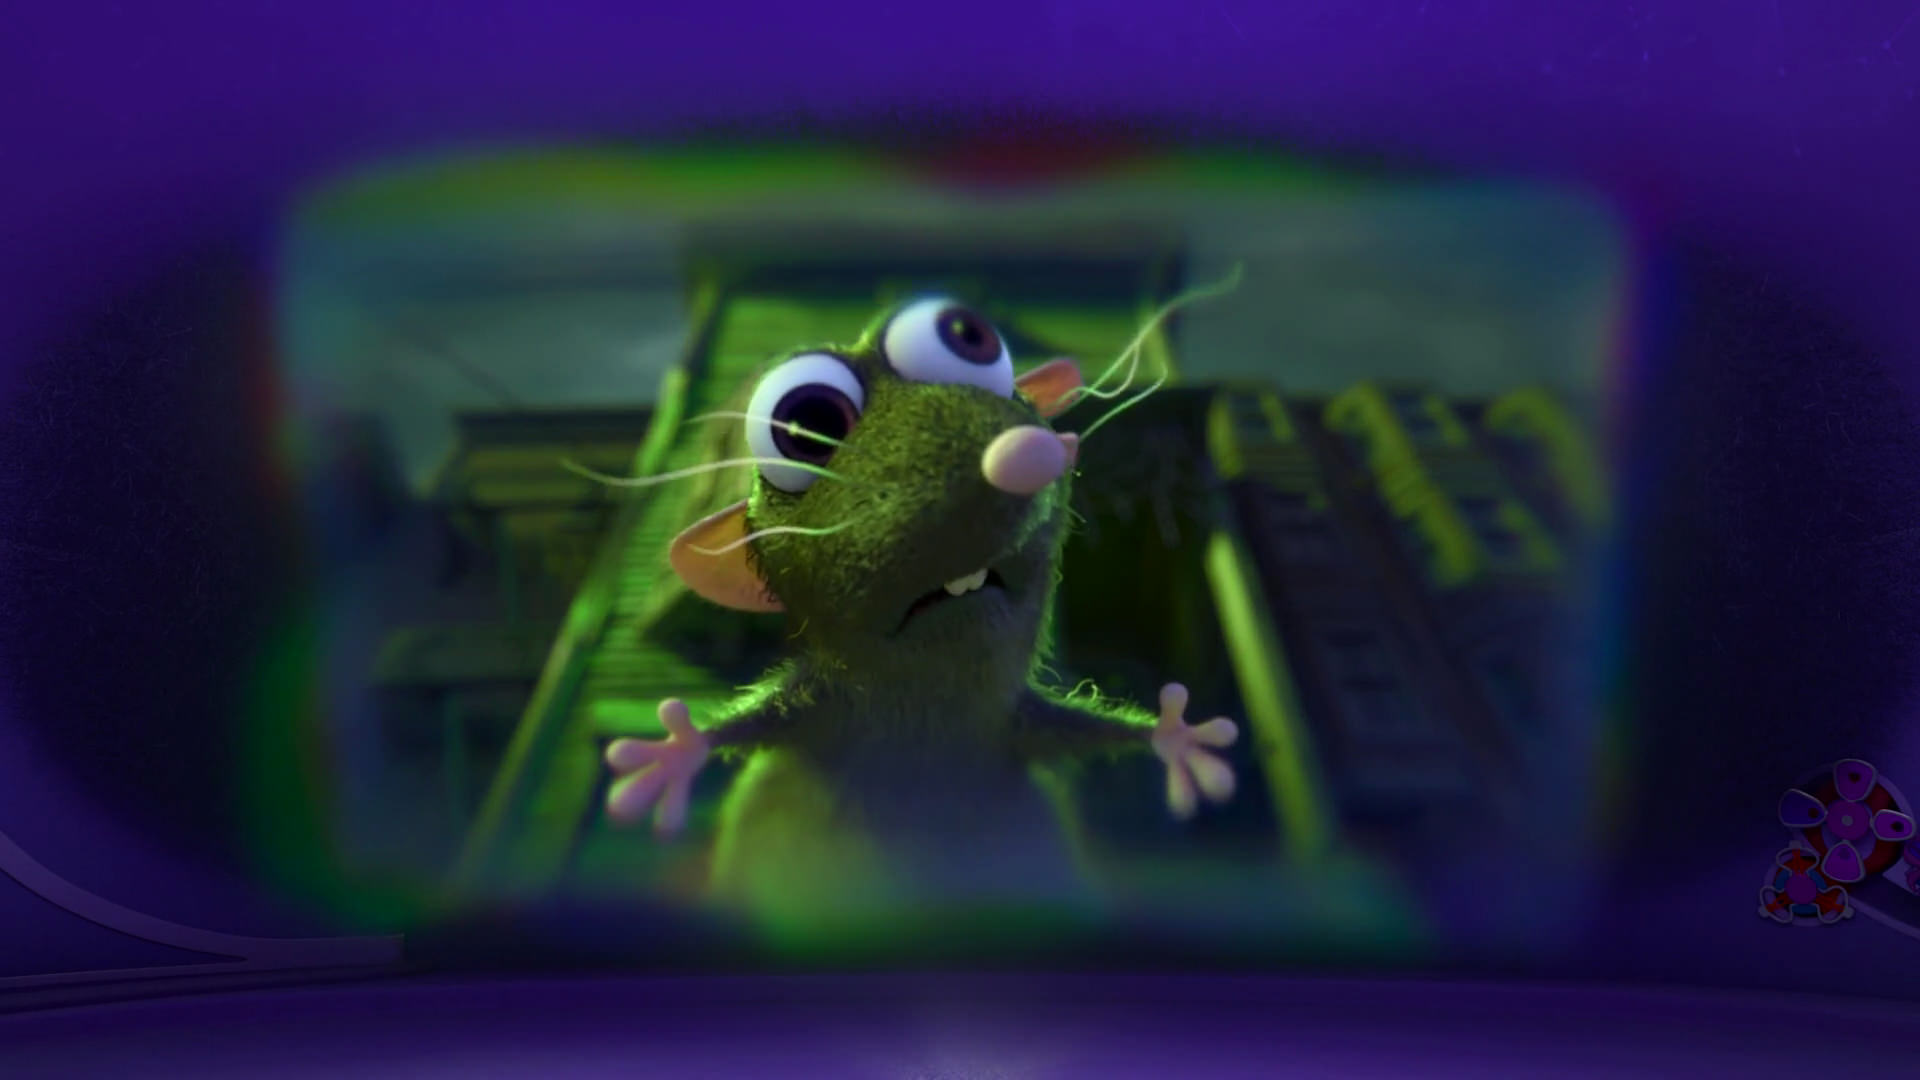 rat pixar disney character personnage vice-versa inside out